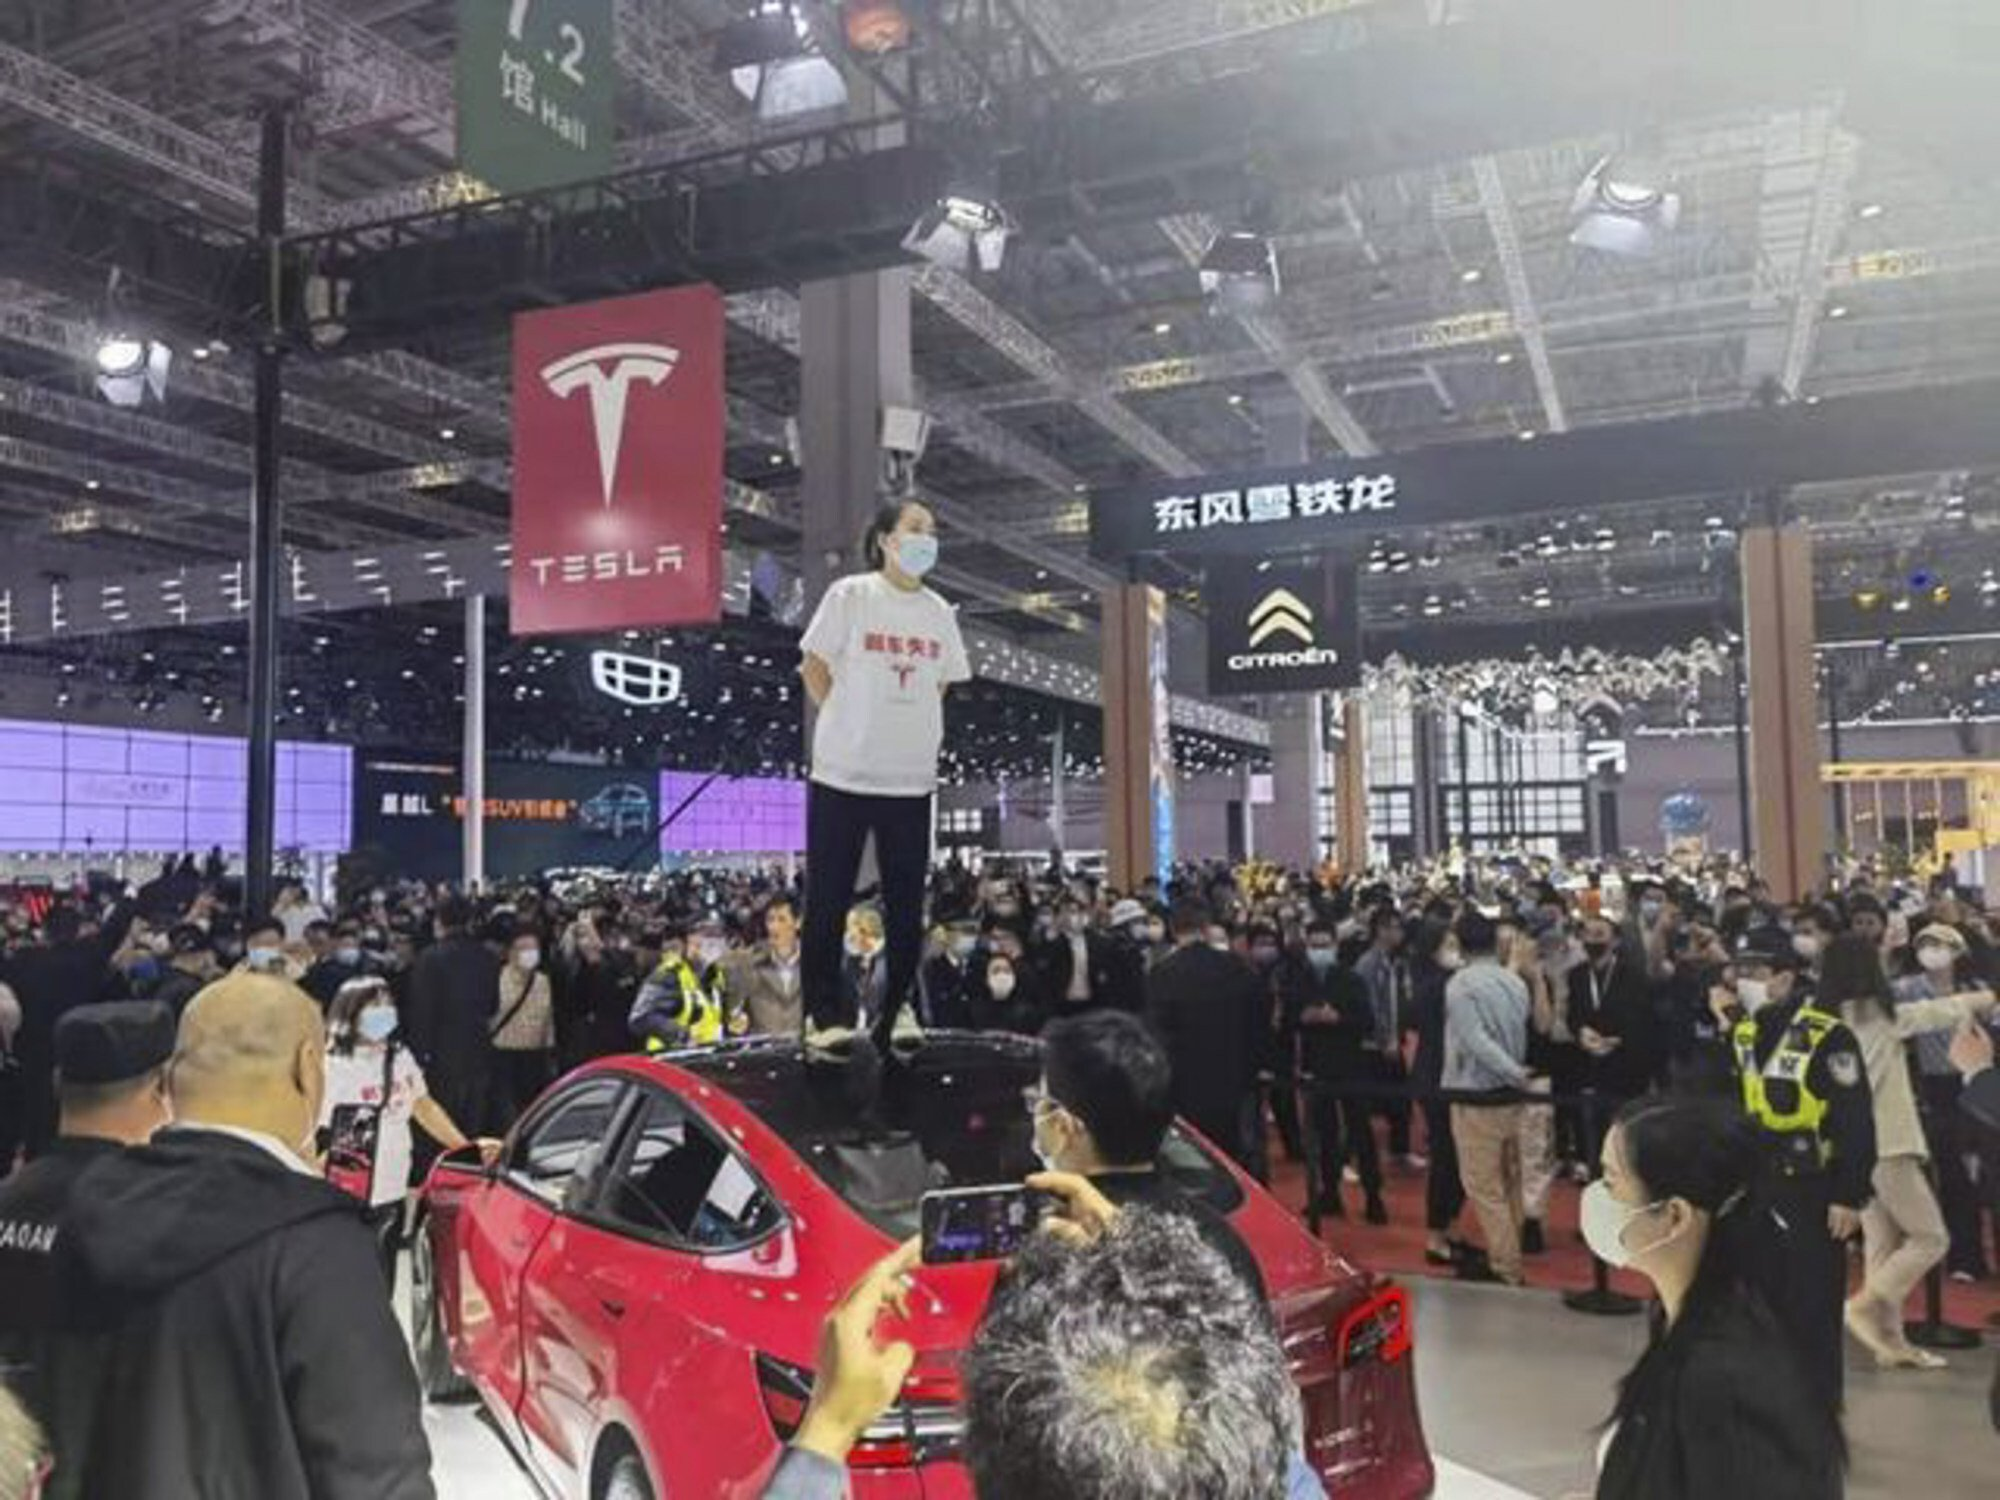 Zhang said she was protesting after the company refused to release her vehicle's full data from the crash and refused a to issue a refund. Photo: Baidu